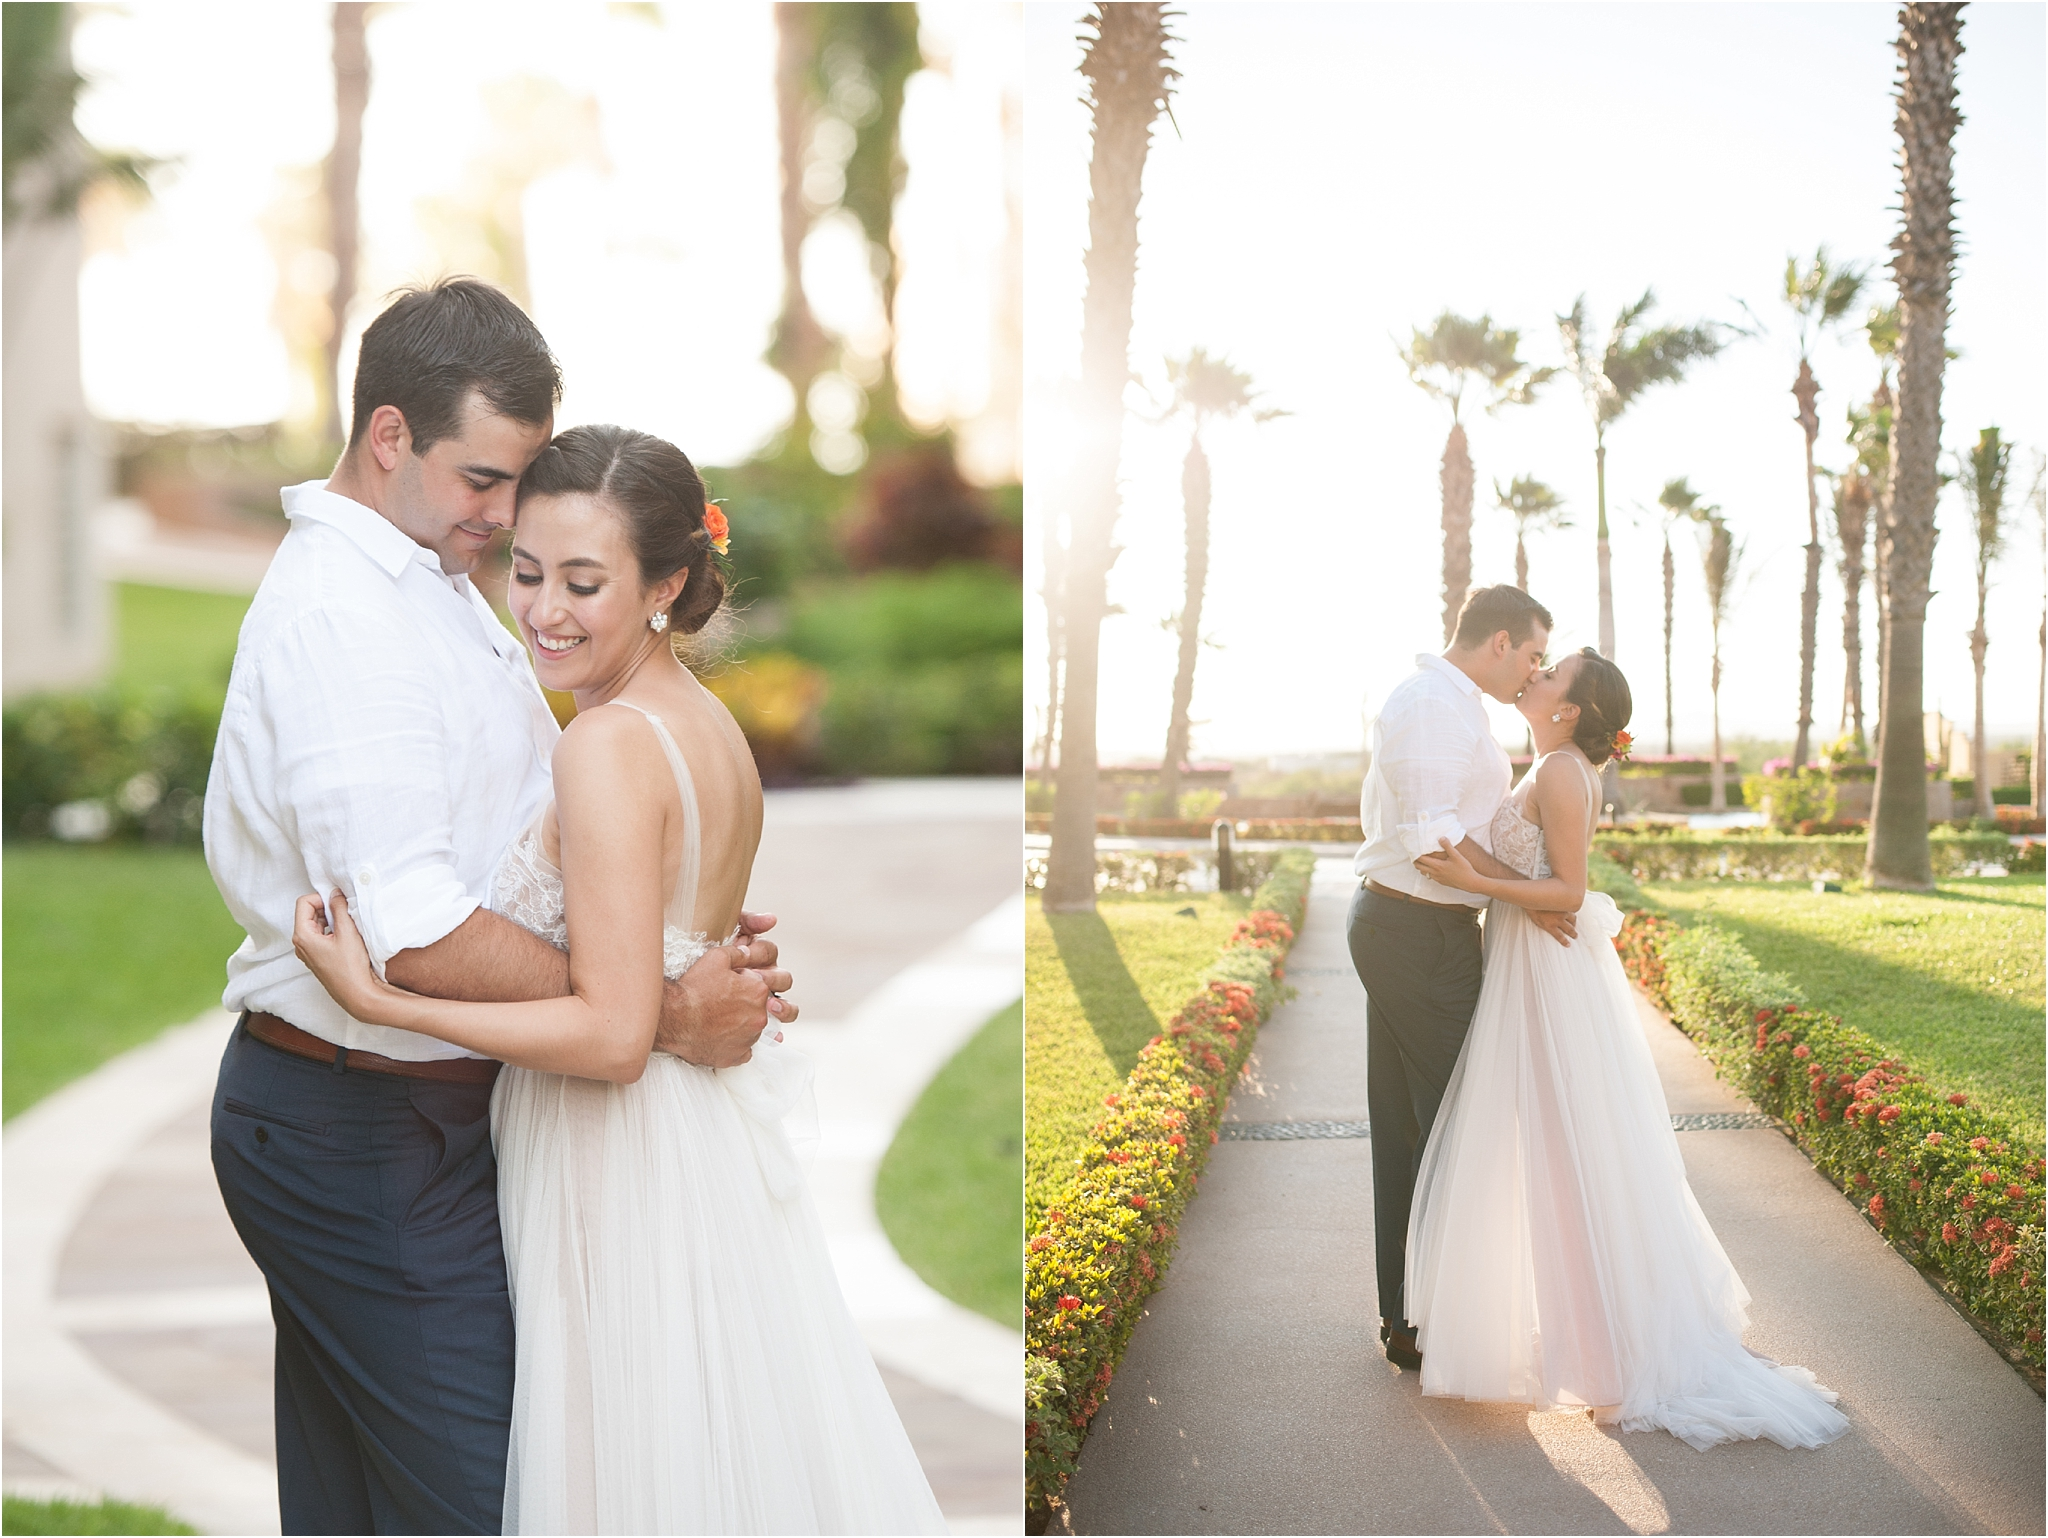 kayla kitts photography - albuquerque wedding photographer - new mexico wedding photographer - desination wedding photographer - cabo wedding photographer_0003.jpg